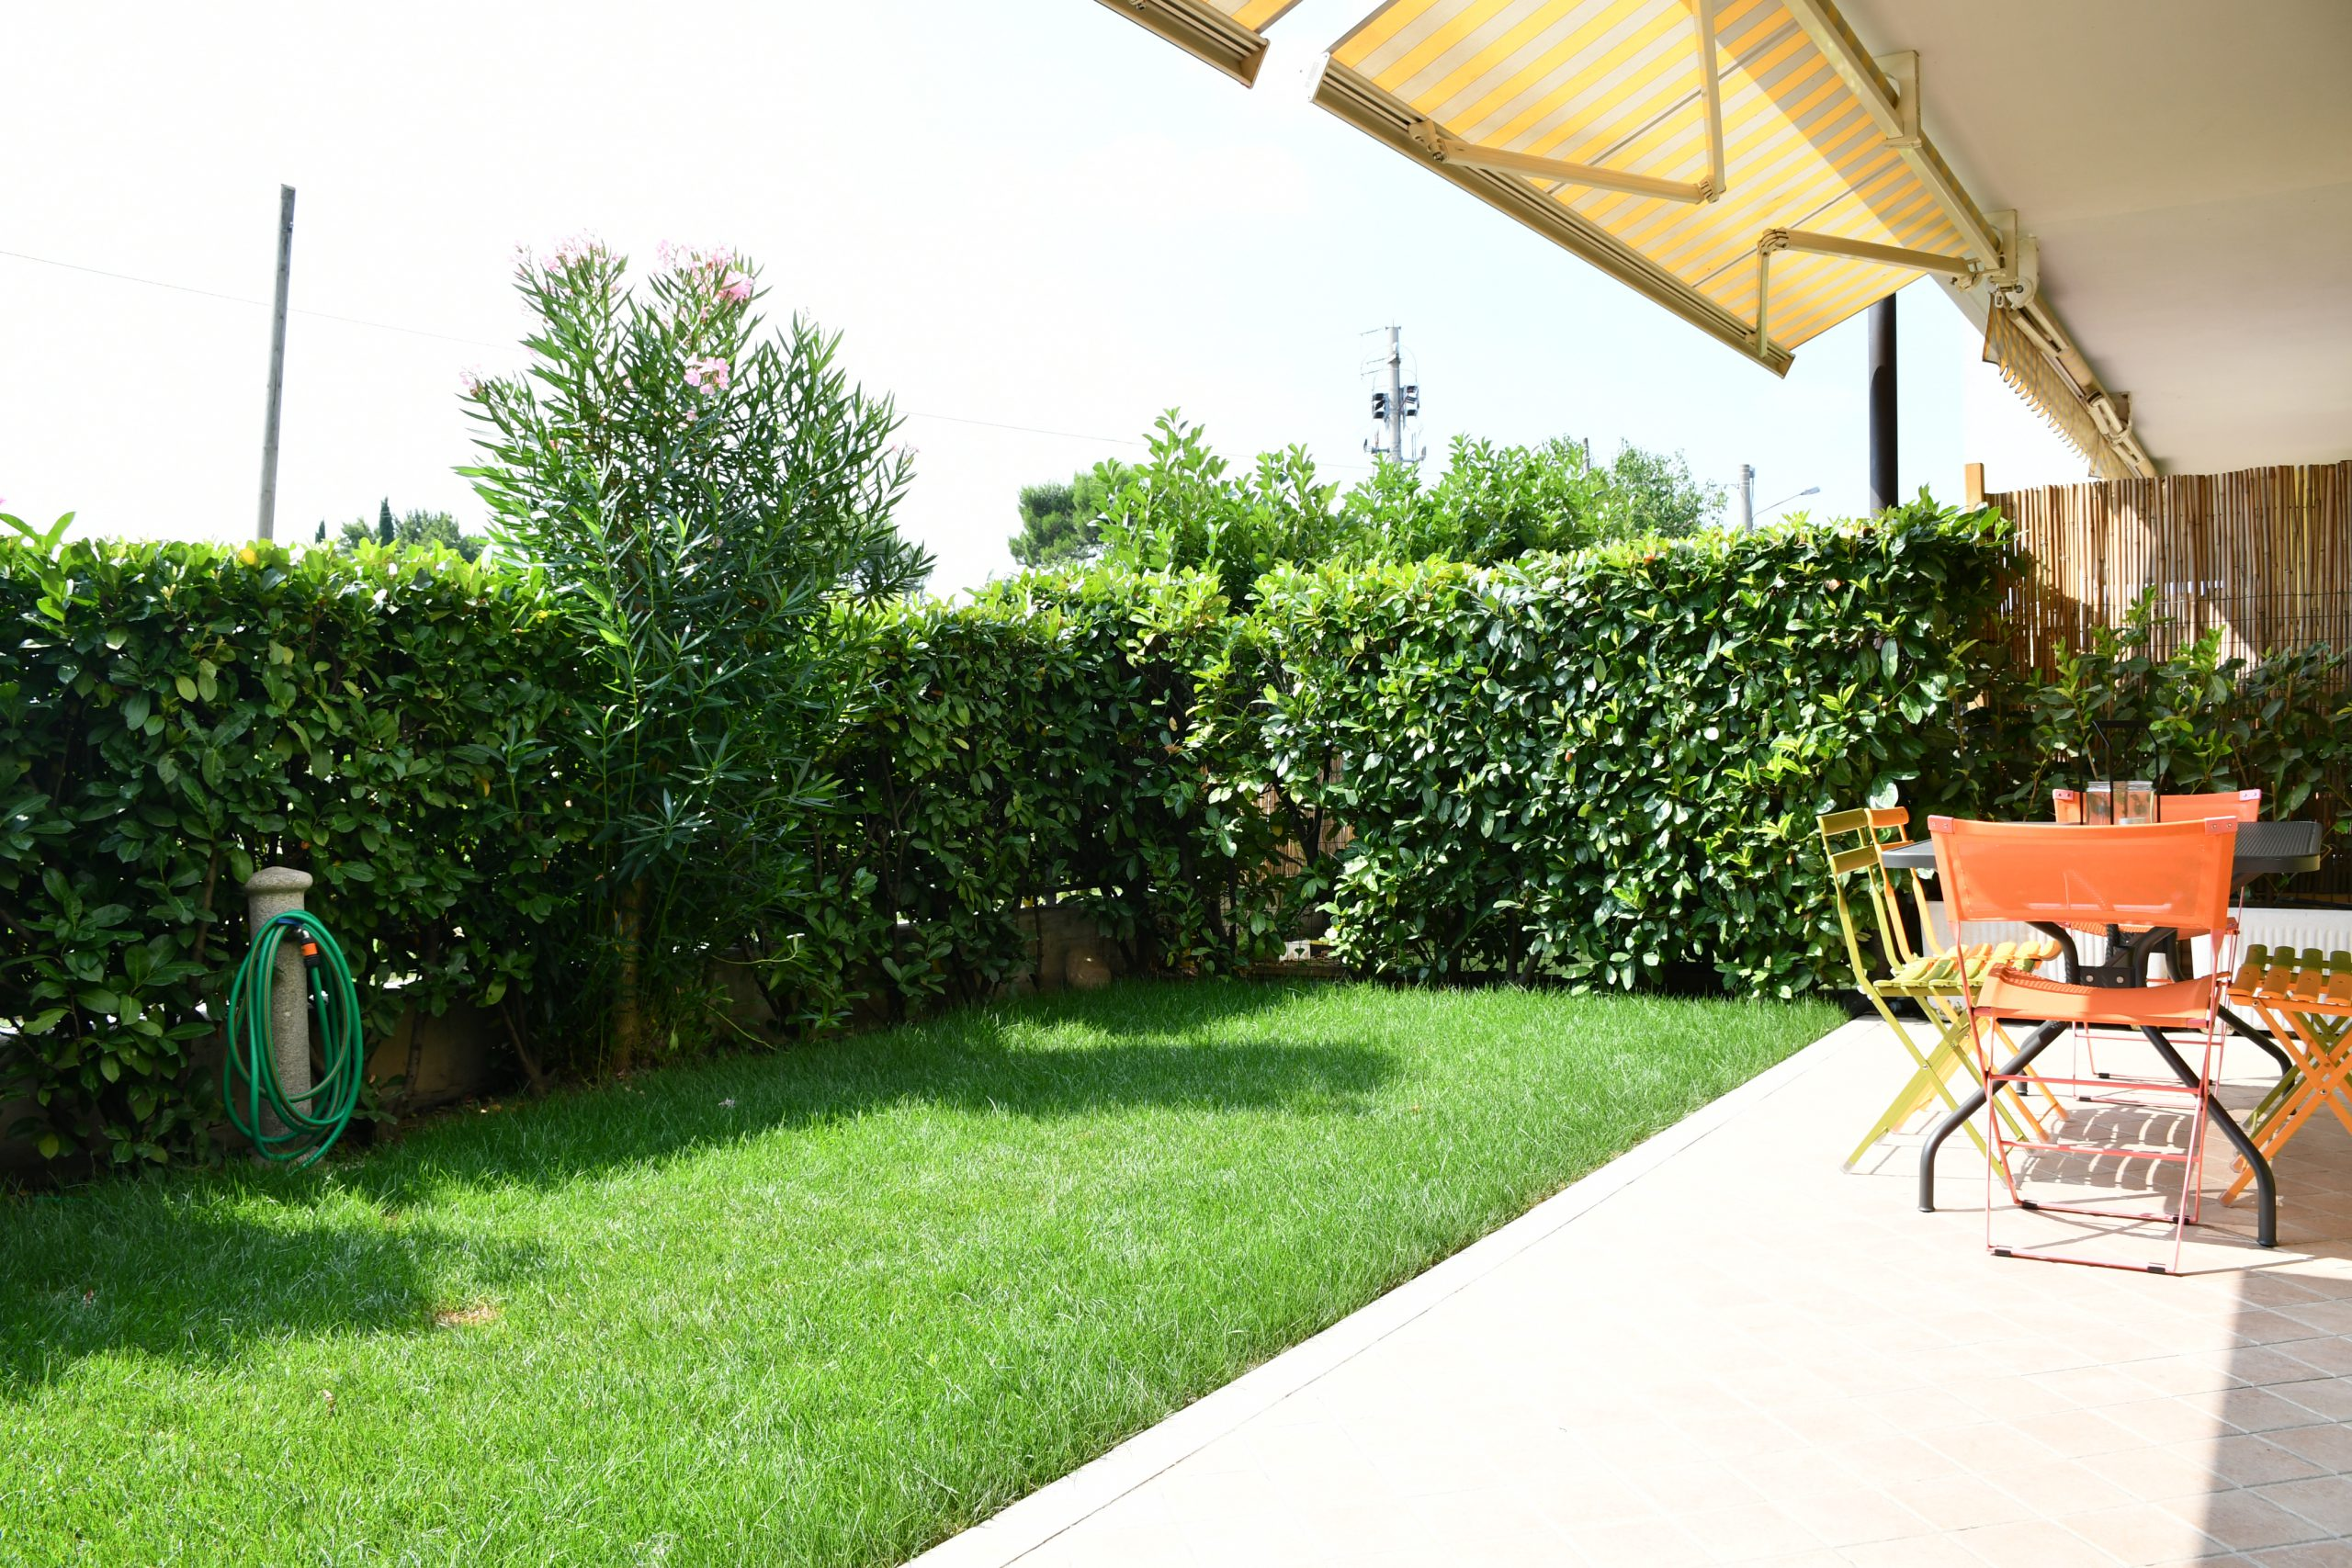 SIMONA'S HOME Apartment in Desenzano and Sirmione - Private Garden Surrounded with hedge